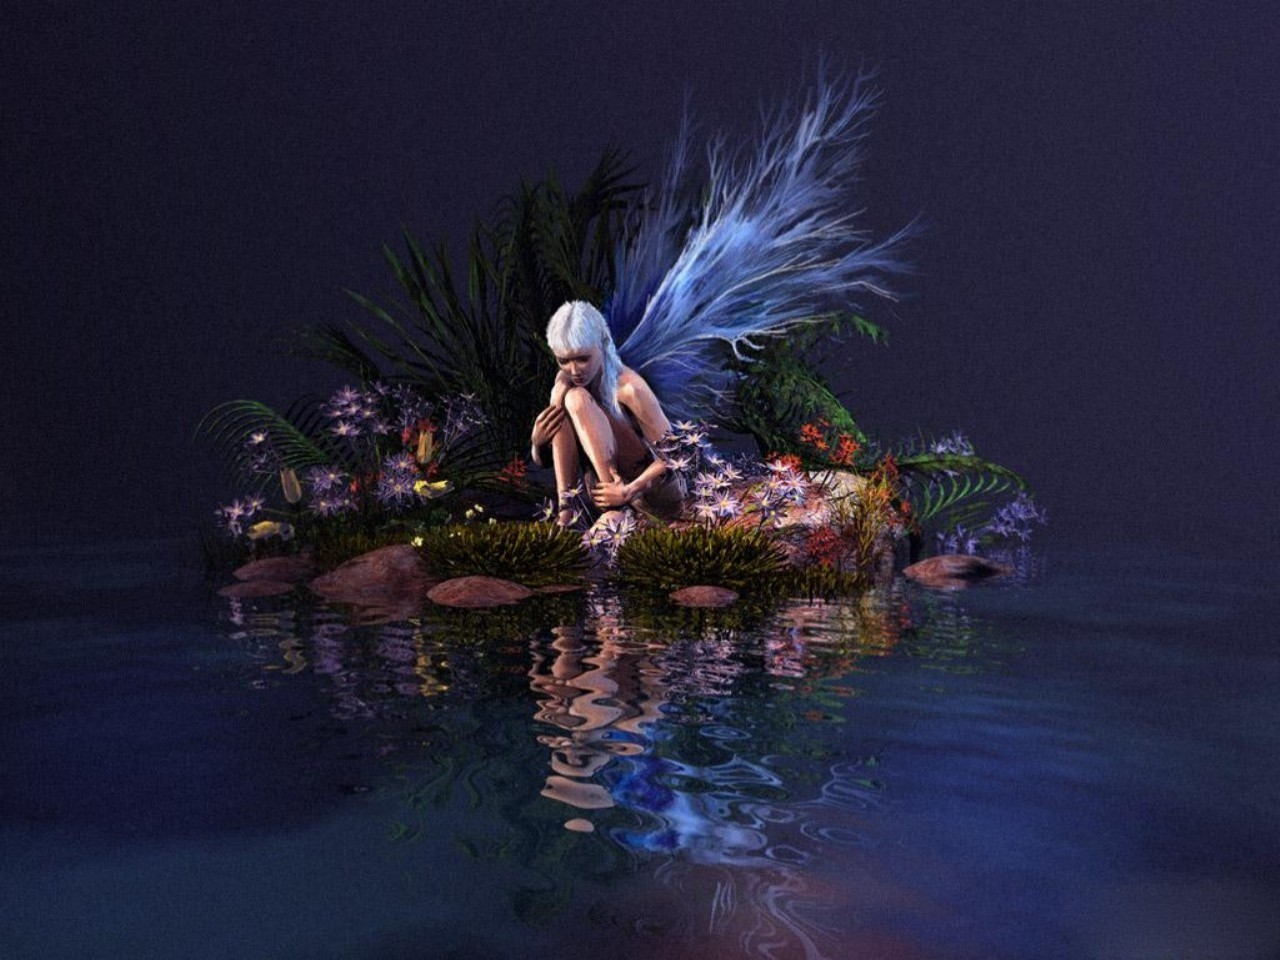 troubled fairy Wallpaper Background 28009 1280x960